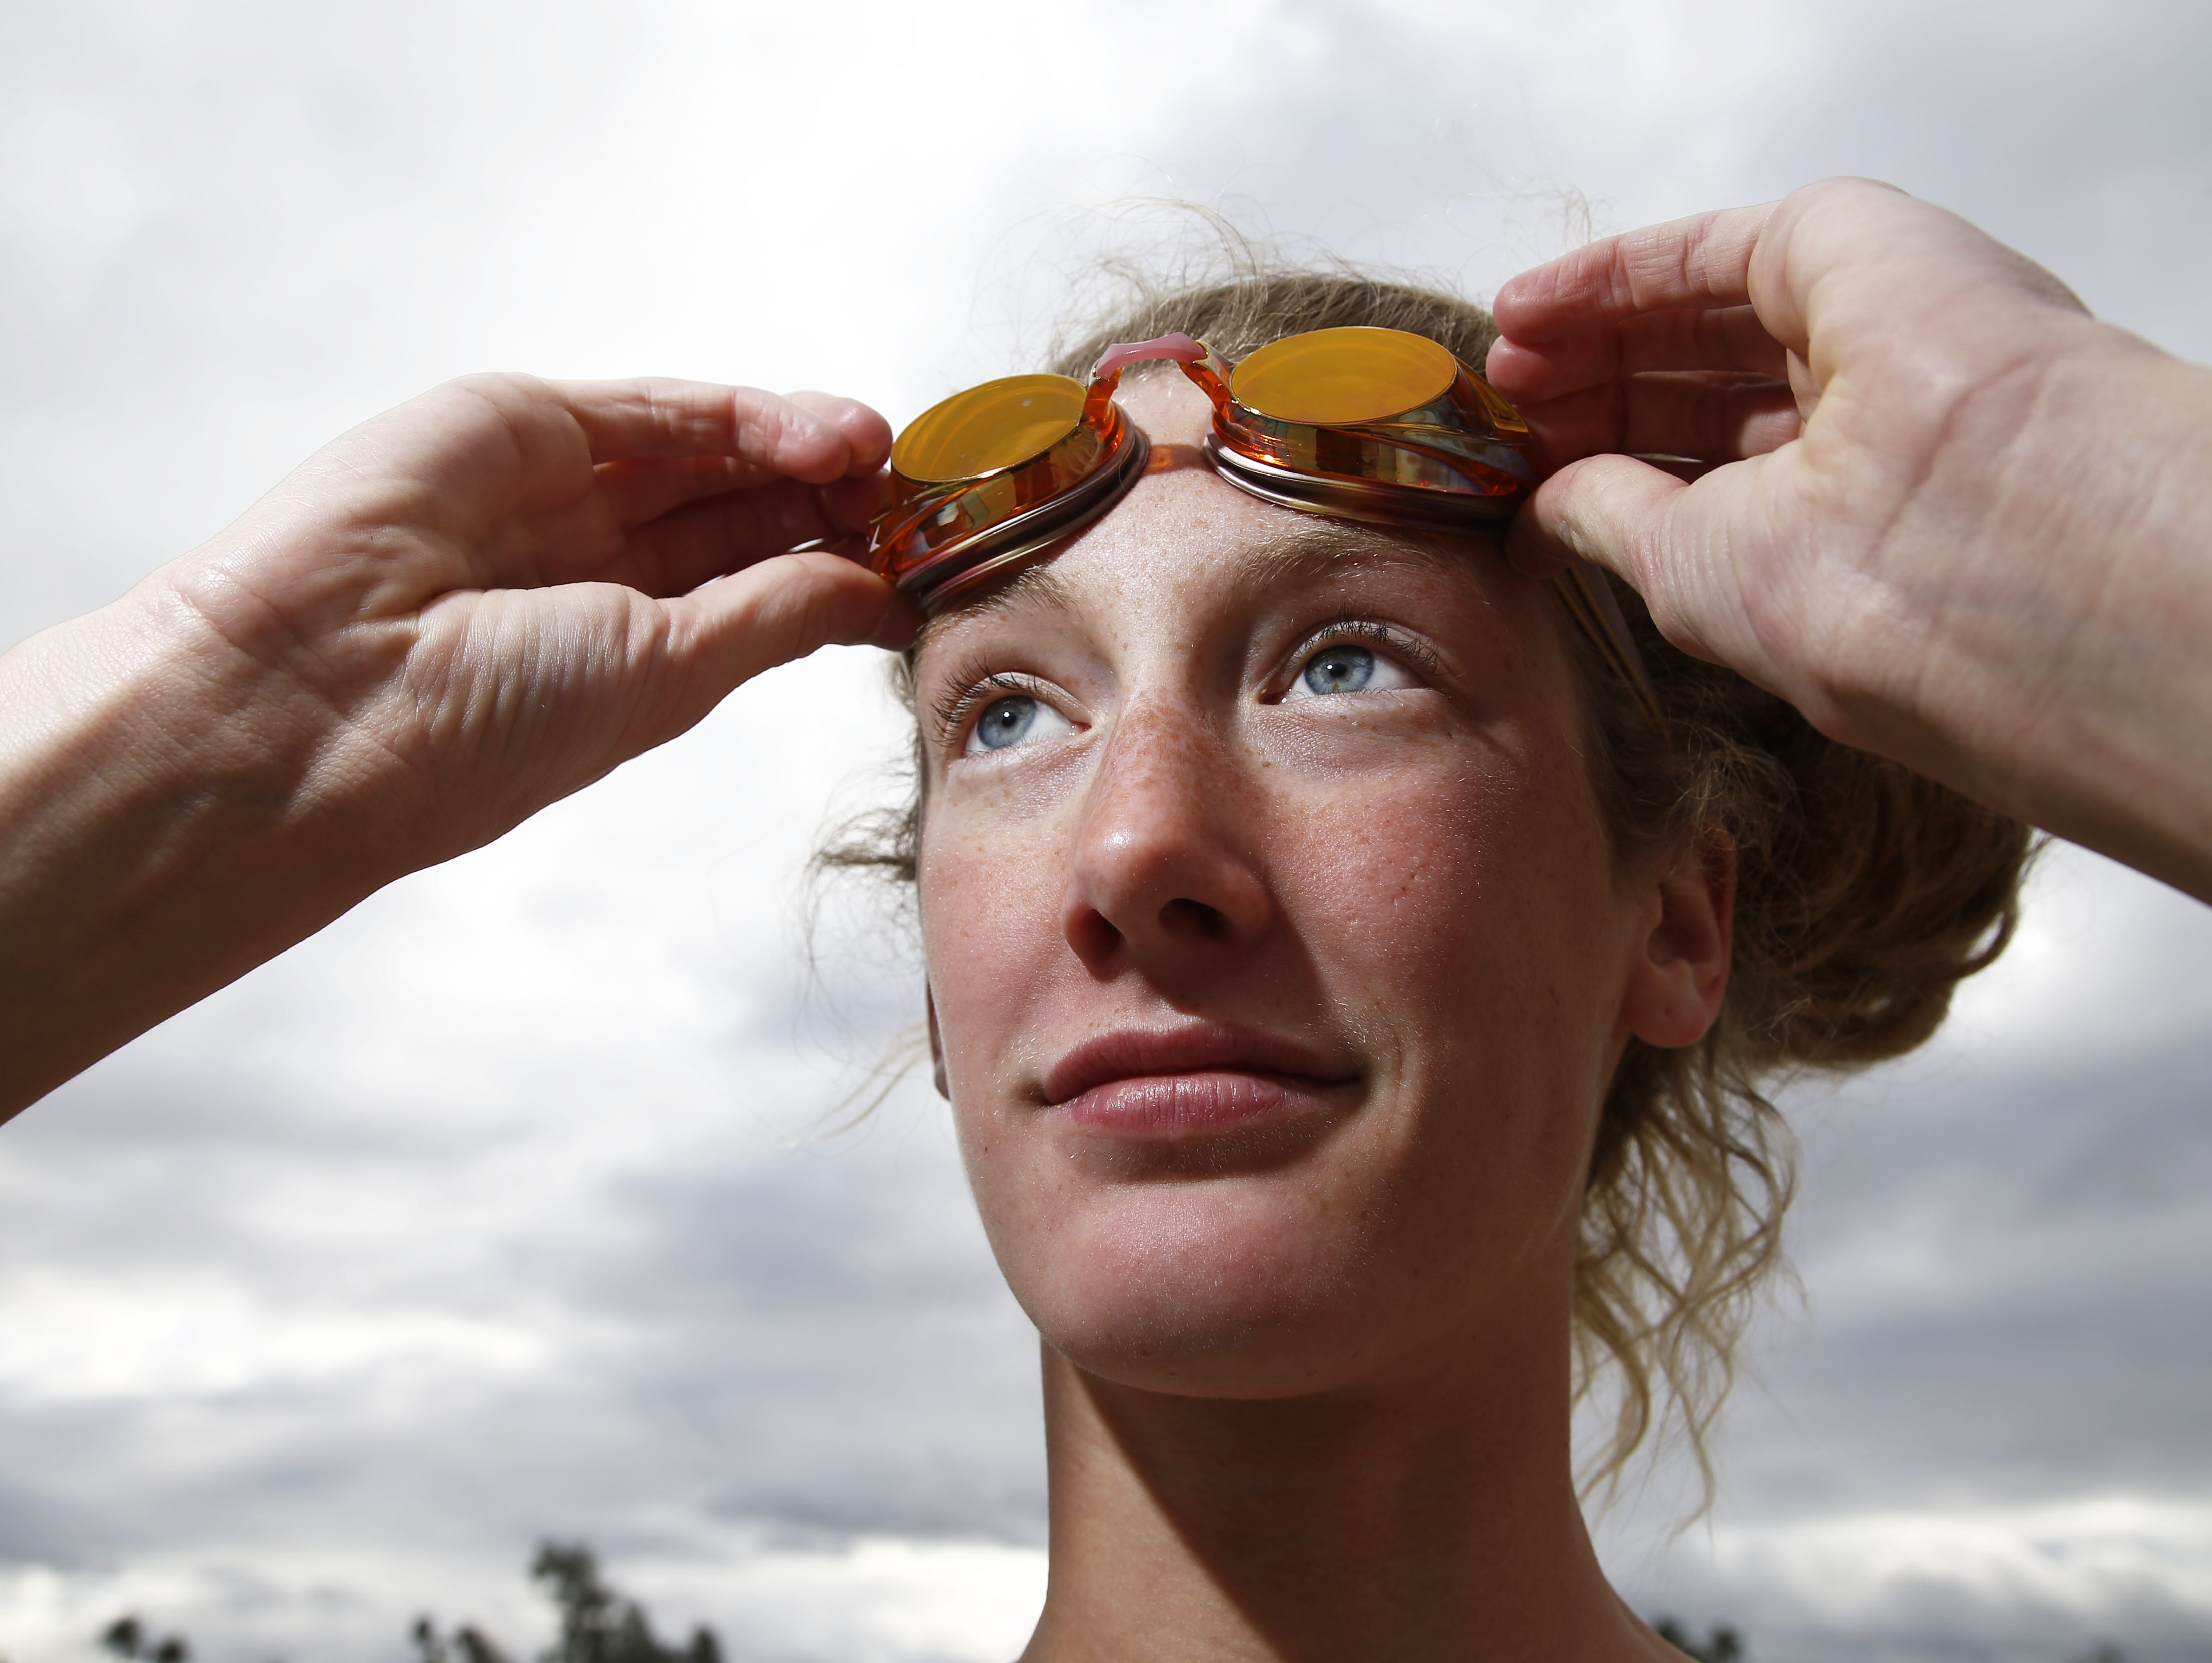 Chaparral sophomore swimmer Taylor Ruck at Scottsdale Aquatic Center in Scottsdale, Ariz. Ruck is expected to make the Olympic Swim Team for Canada next summer.